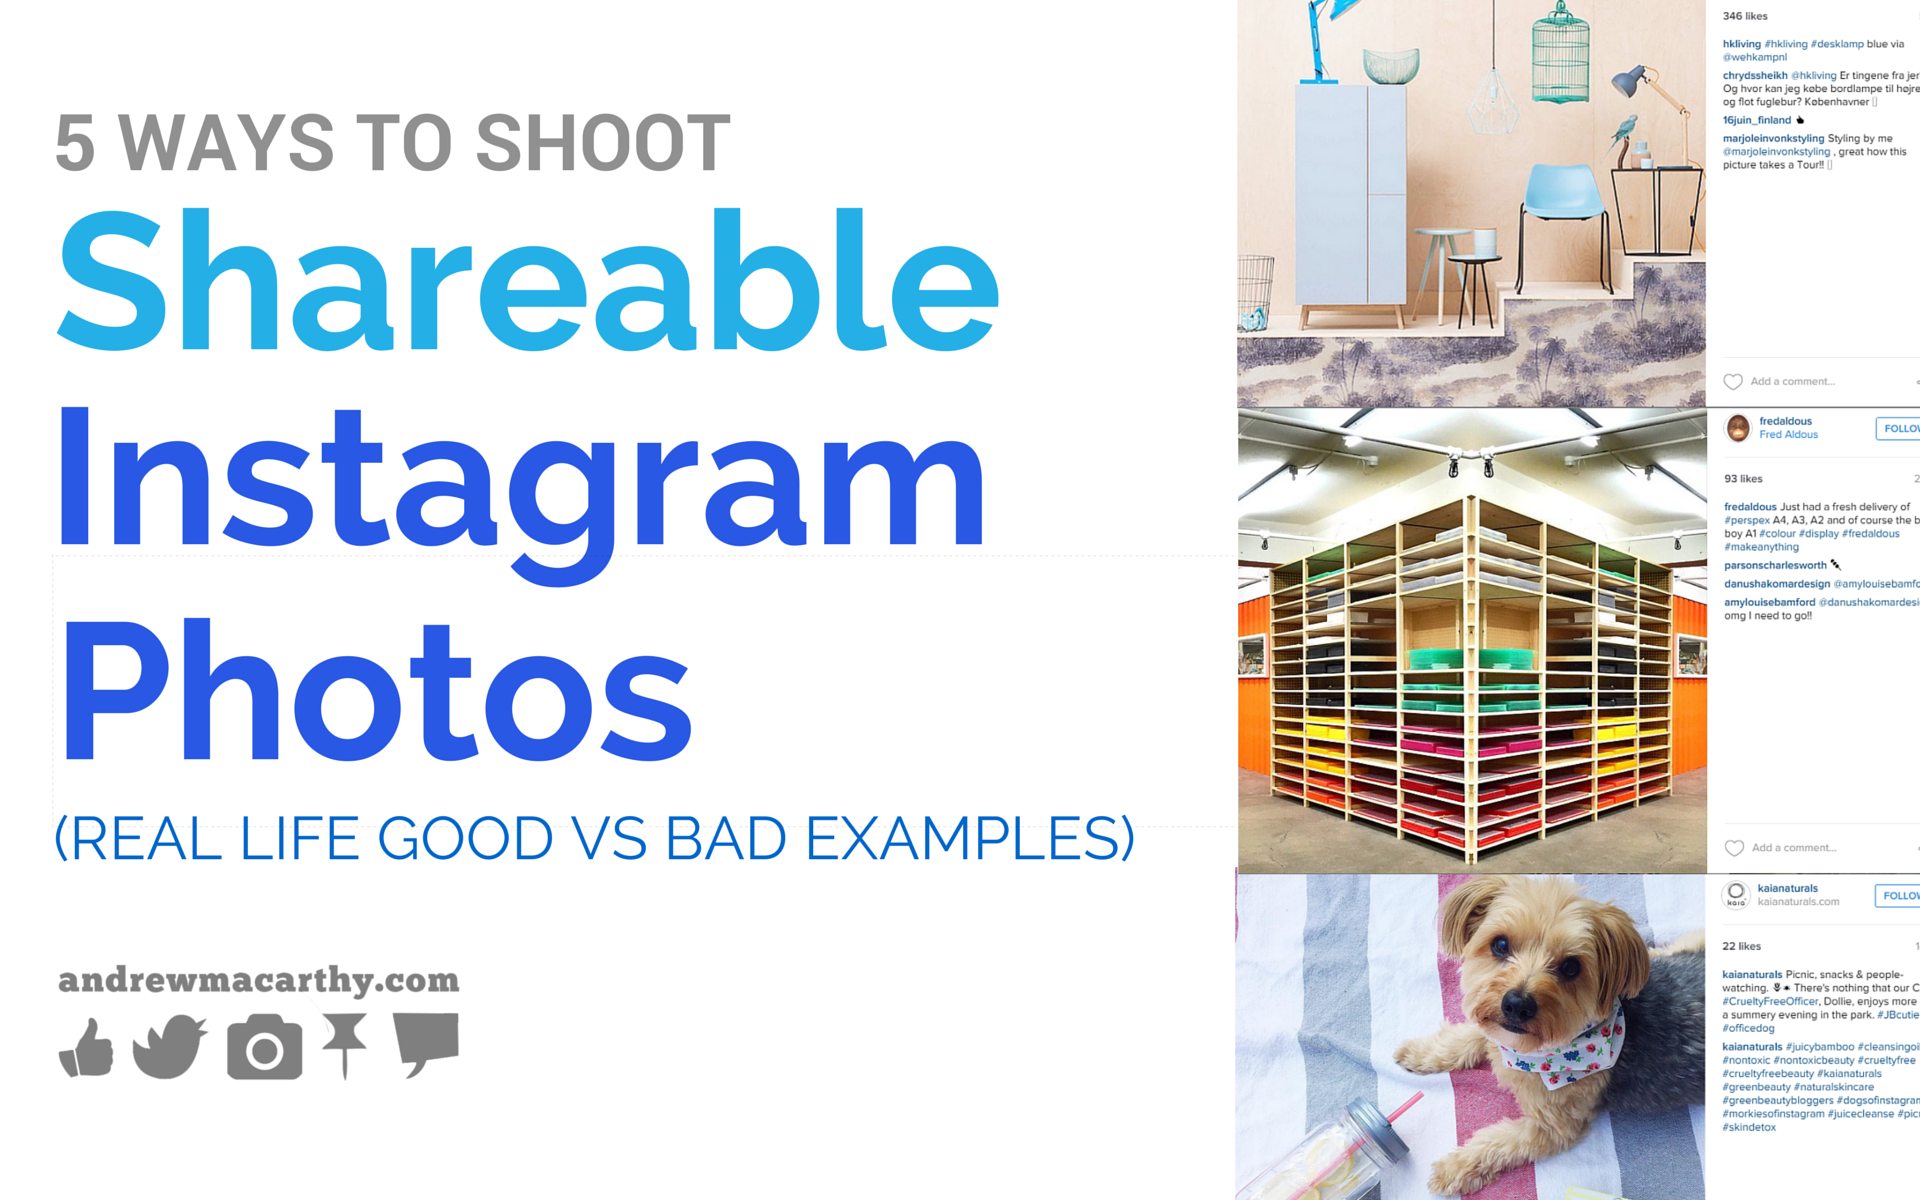 How to Shoot Shareable Instagram Photos: Real Life Good vs Bad Examples